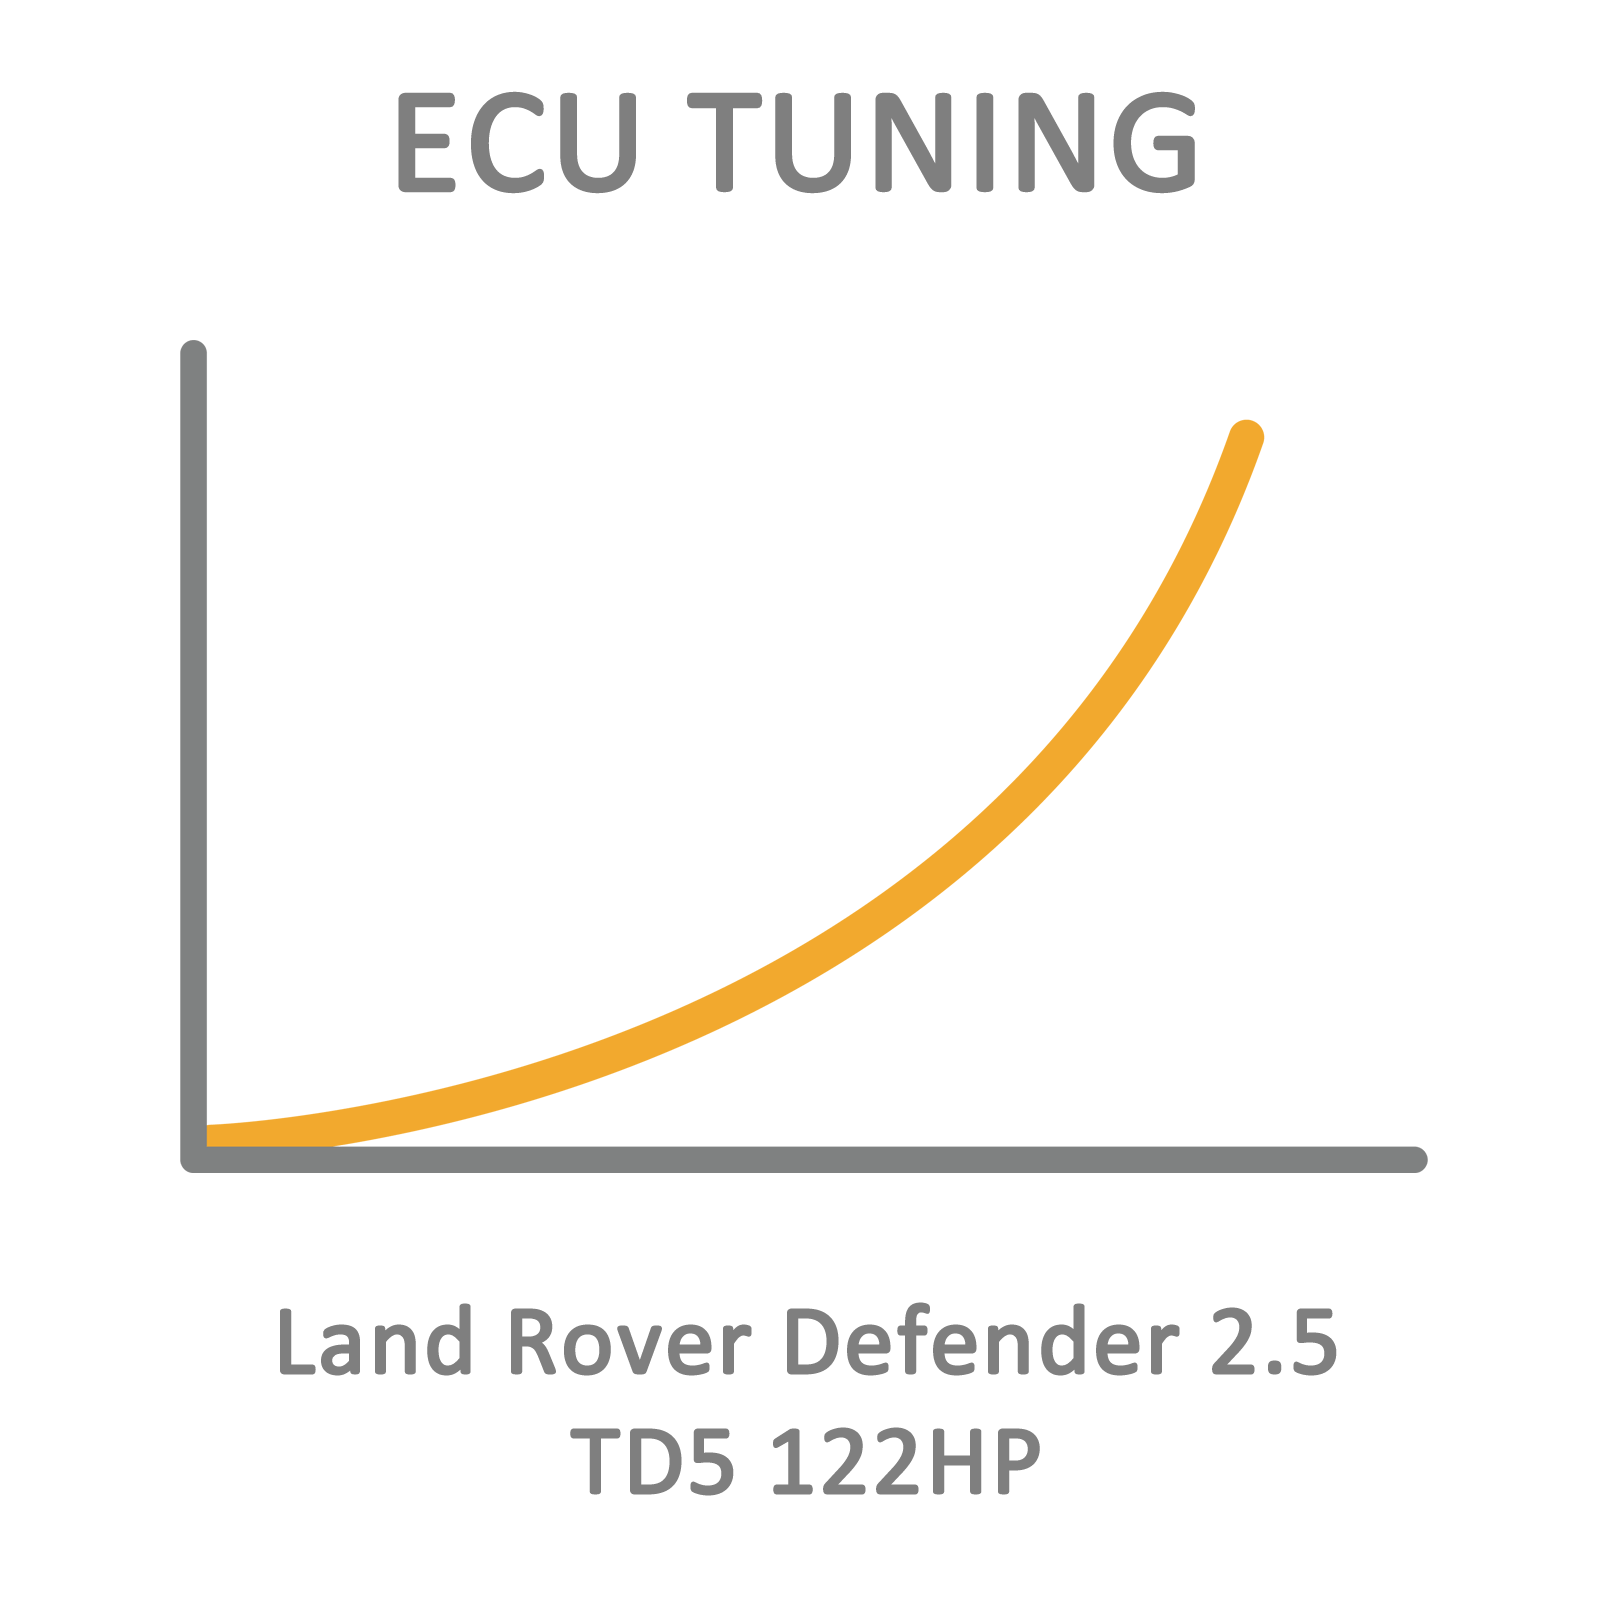 Land Rover Defender 2.5 TD5 122HP ECU Tuning Remapping